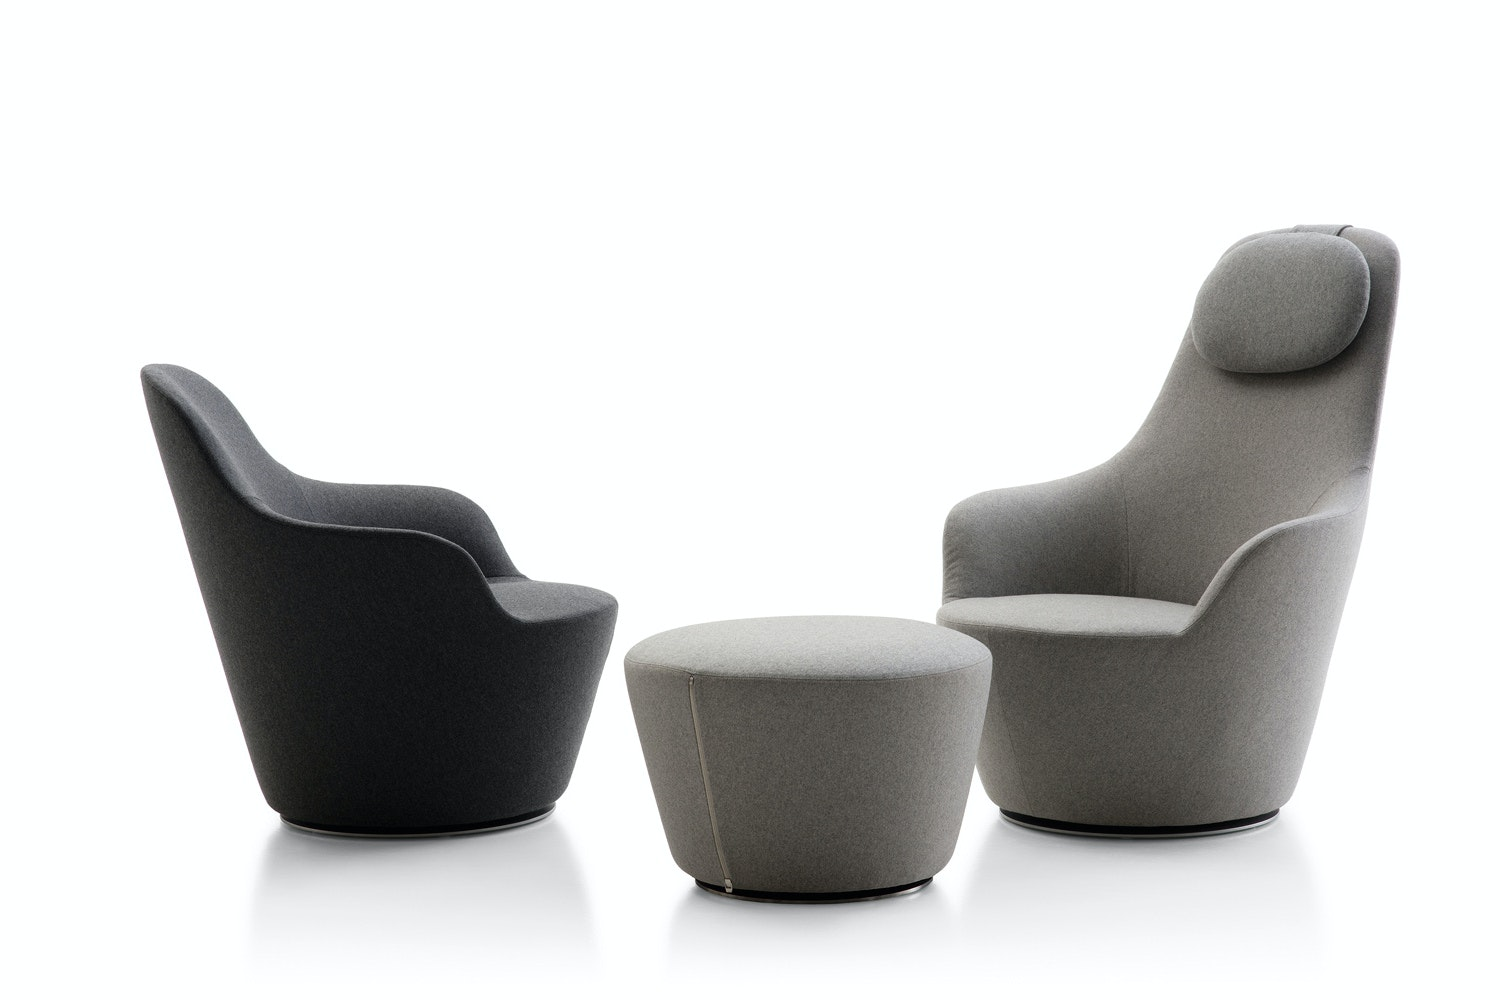 Harbor Armchair by Naoto Fukasawa for B&B Italia